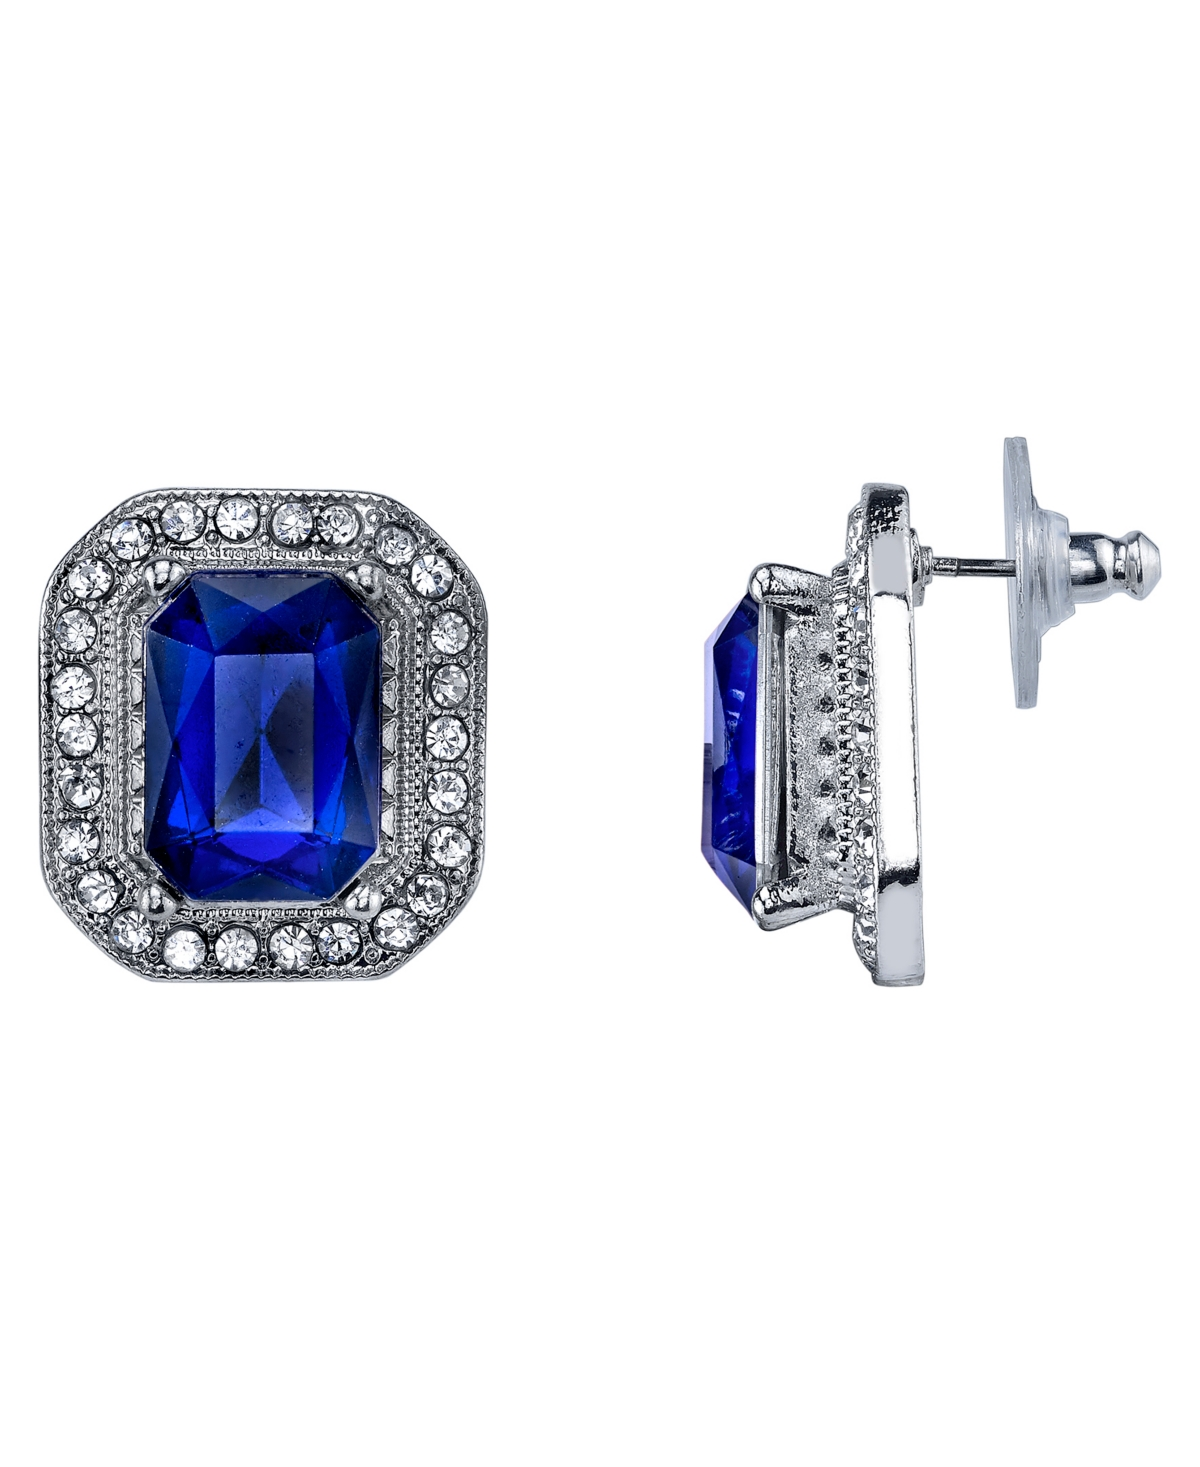 2028 Silver-Tone Dark Blue Stone and Crystal Octagon Button Earrings